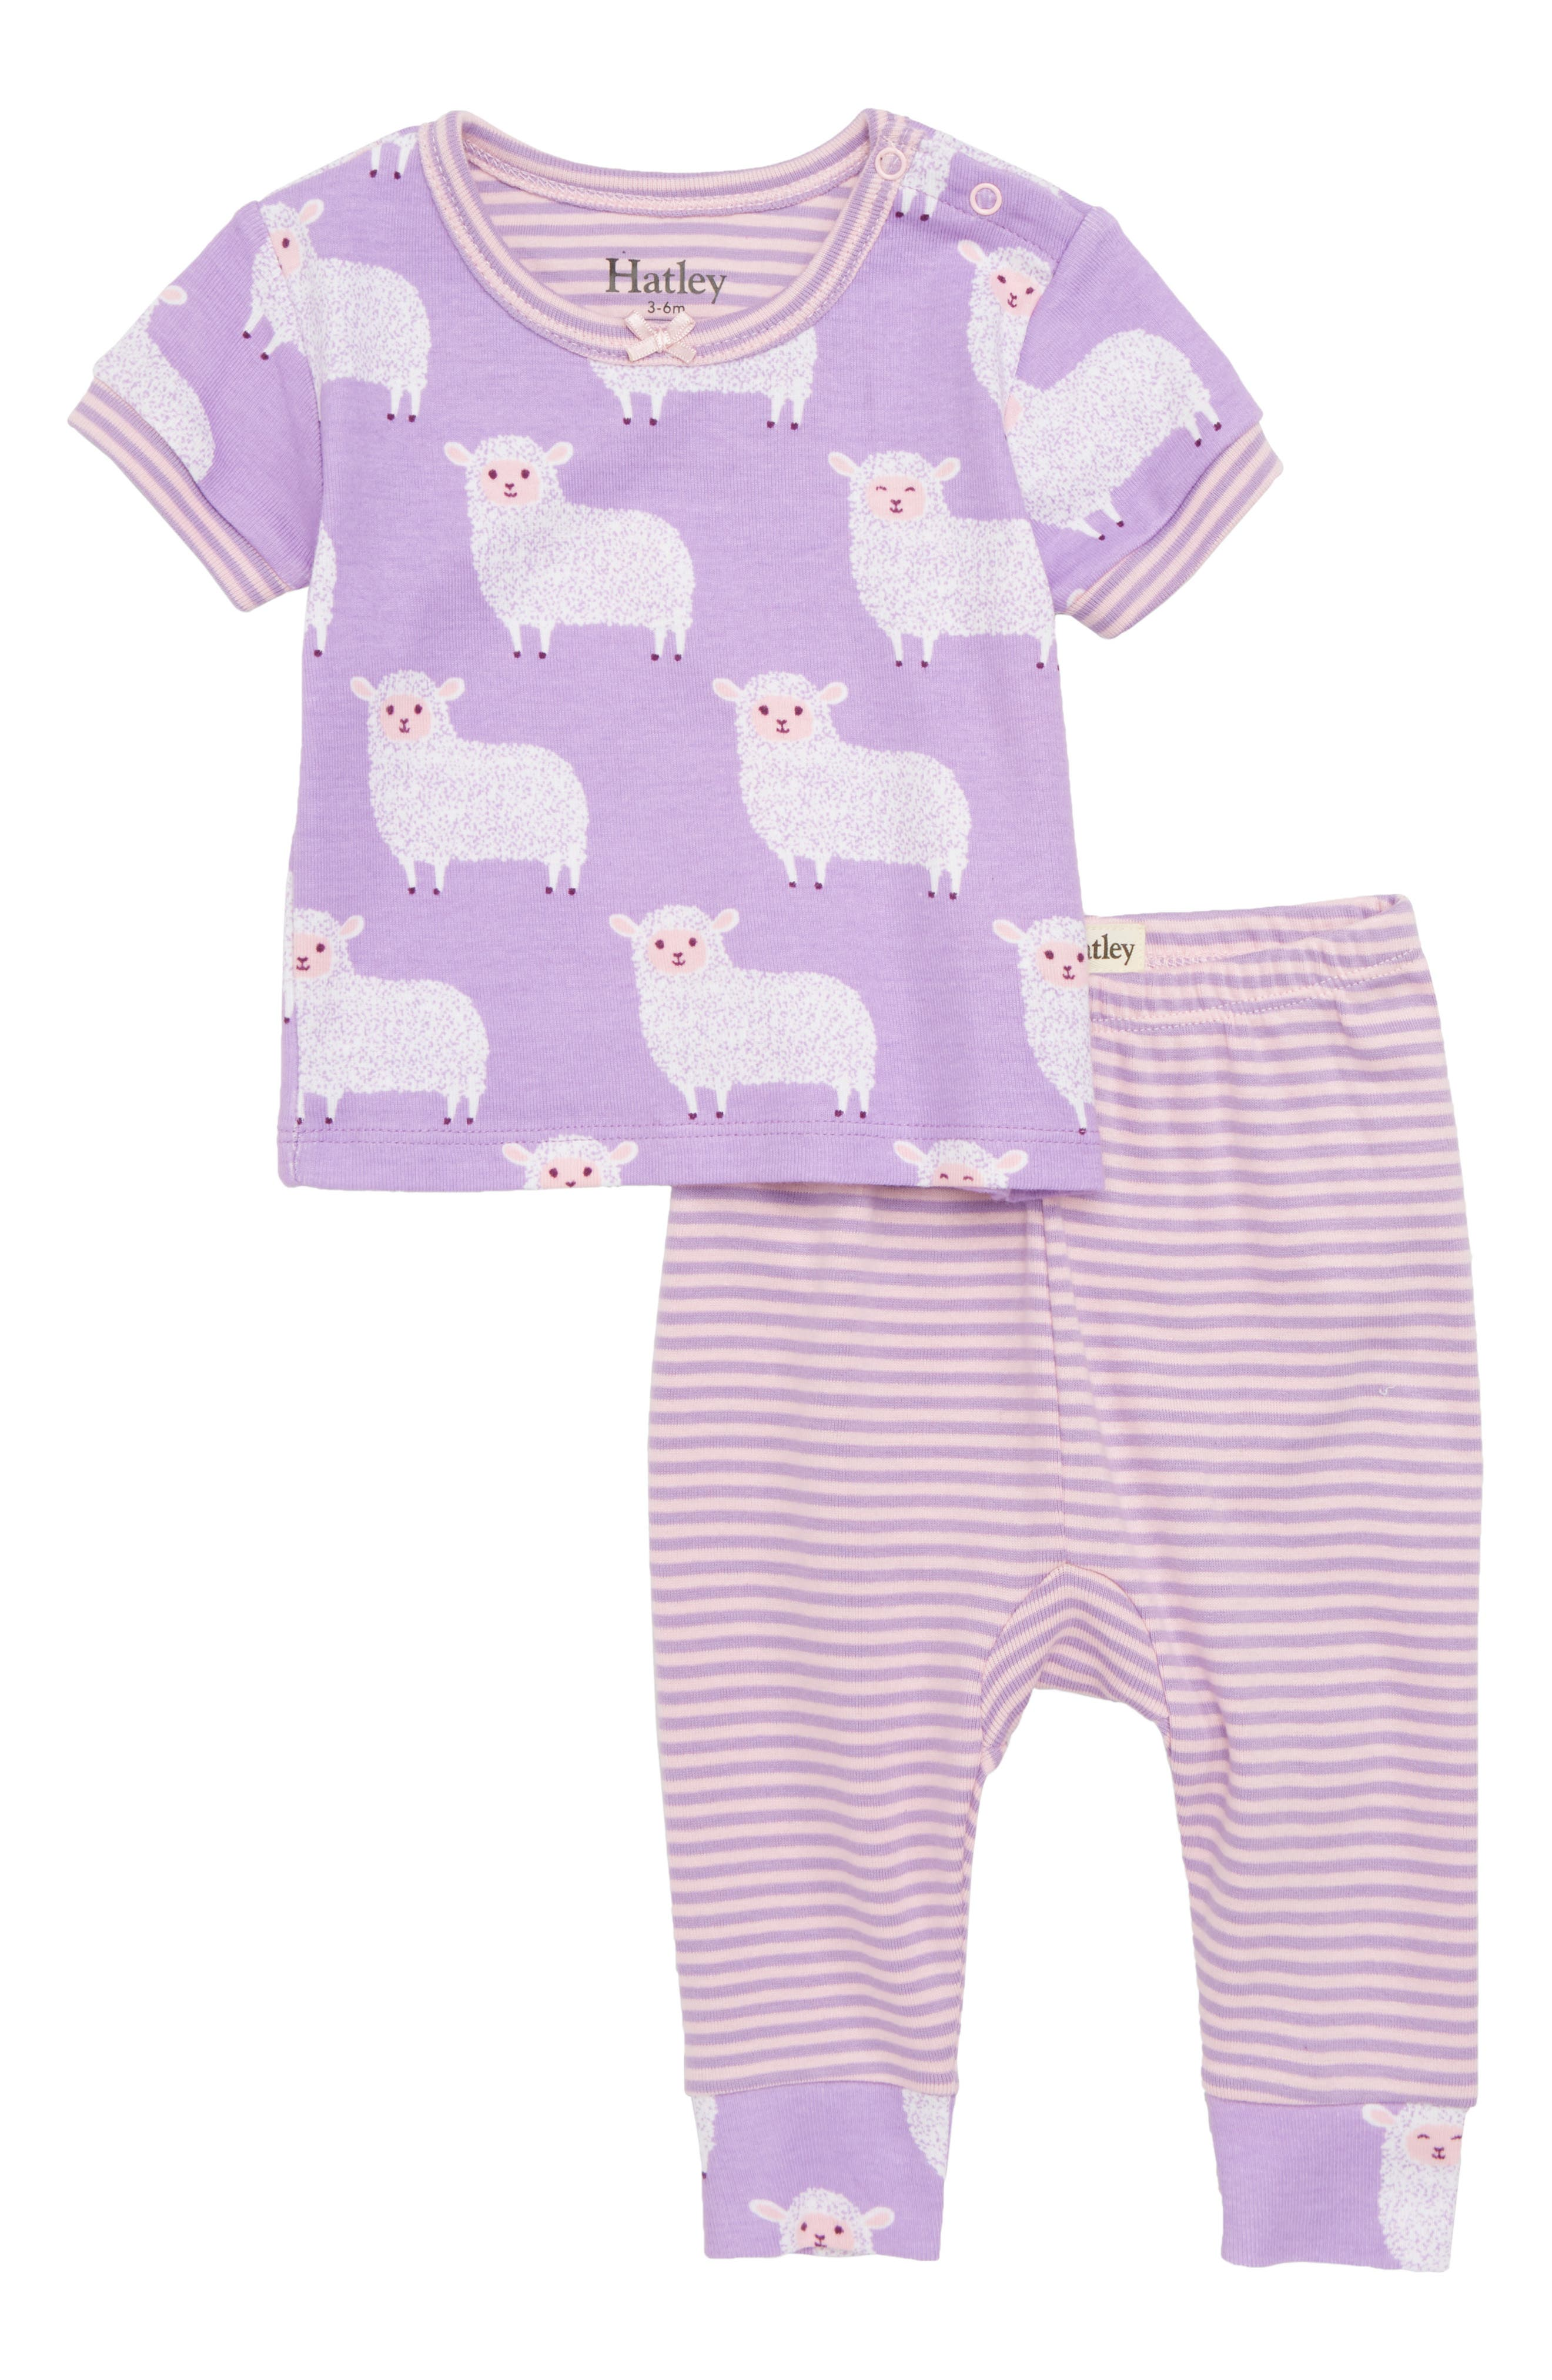 Counting Sheep Fitted Two-Piece Pajamas,                             Main thumbnail 1, color,                             500